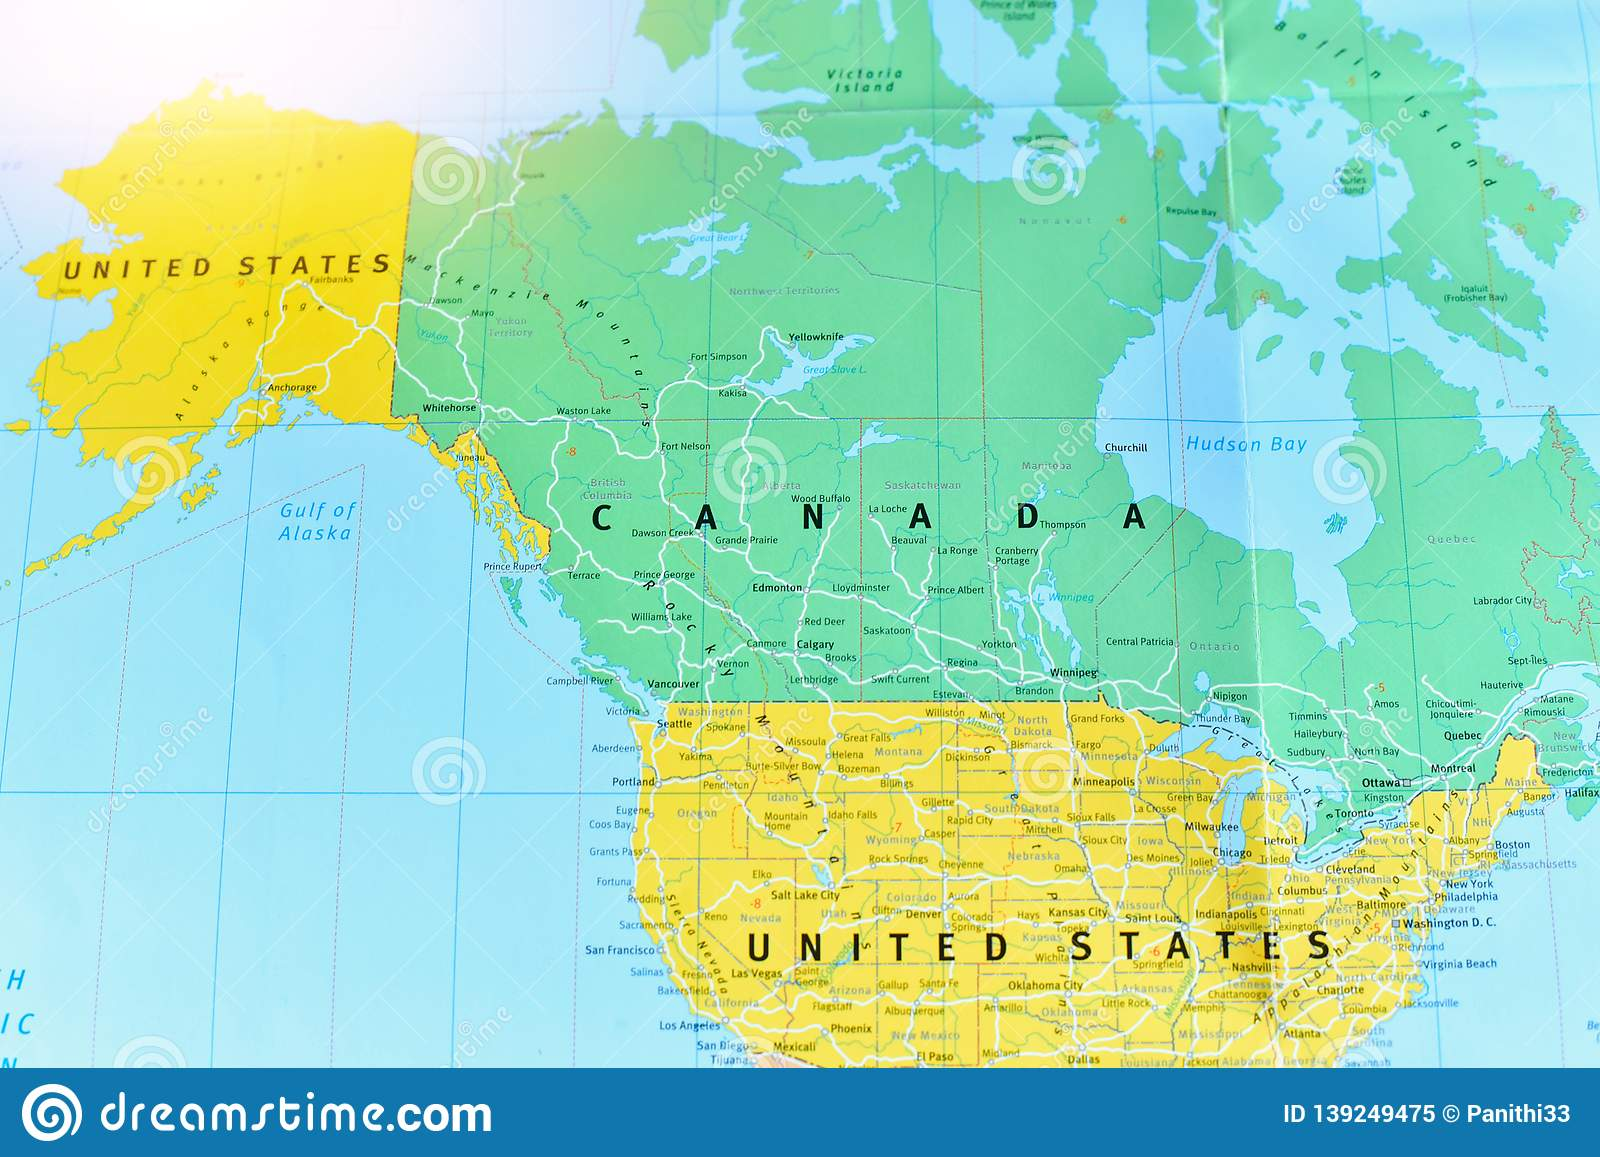 Map Of Canada And The States.Political Map Of Canada And The United States Stock Image Image Of